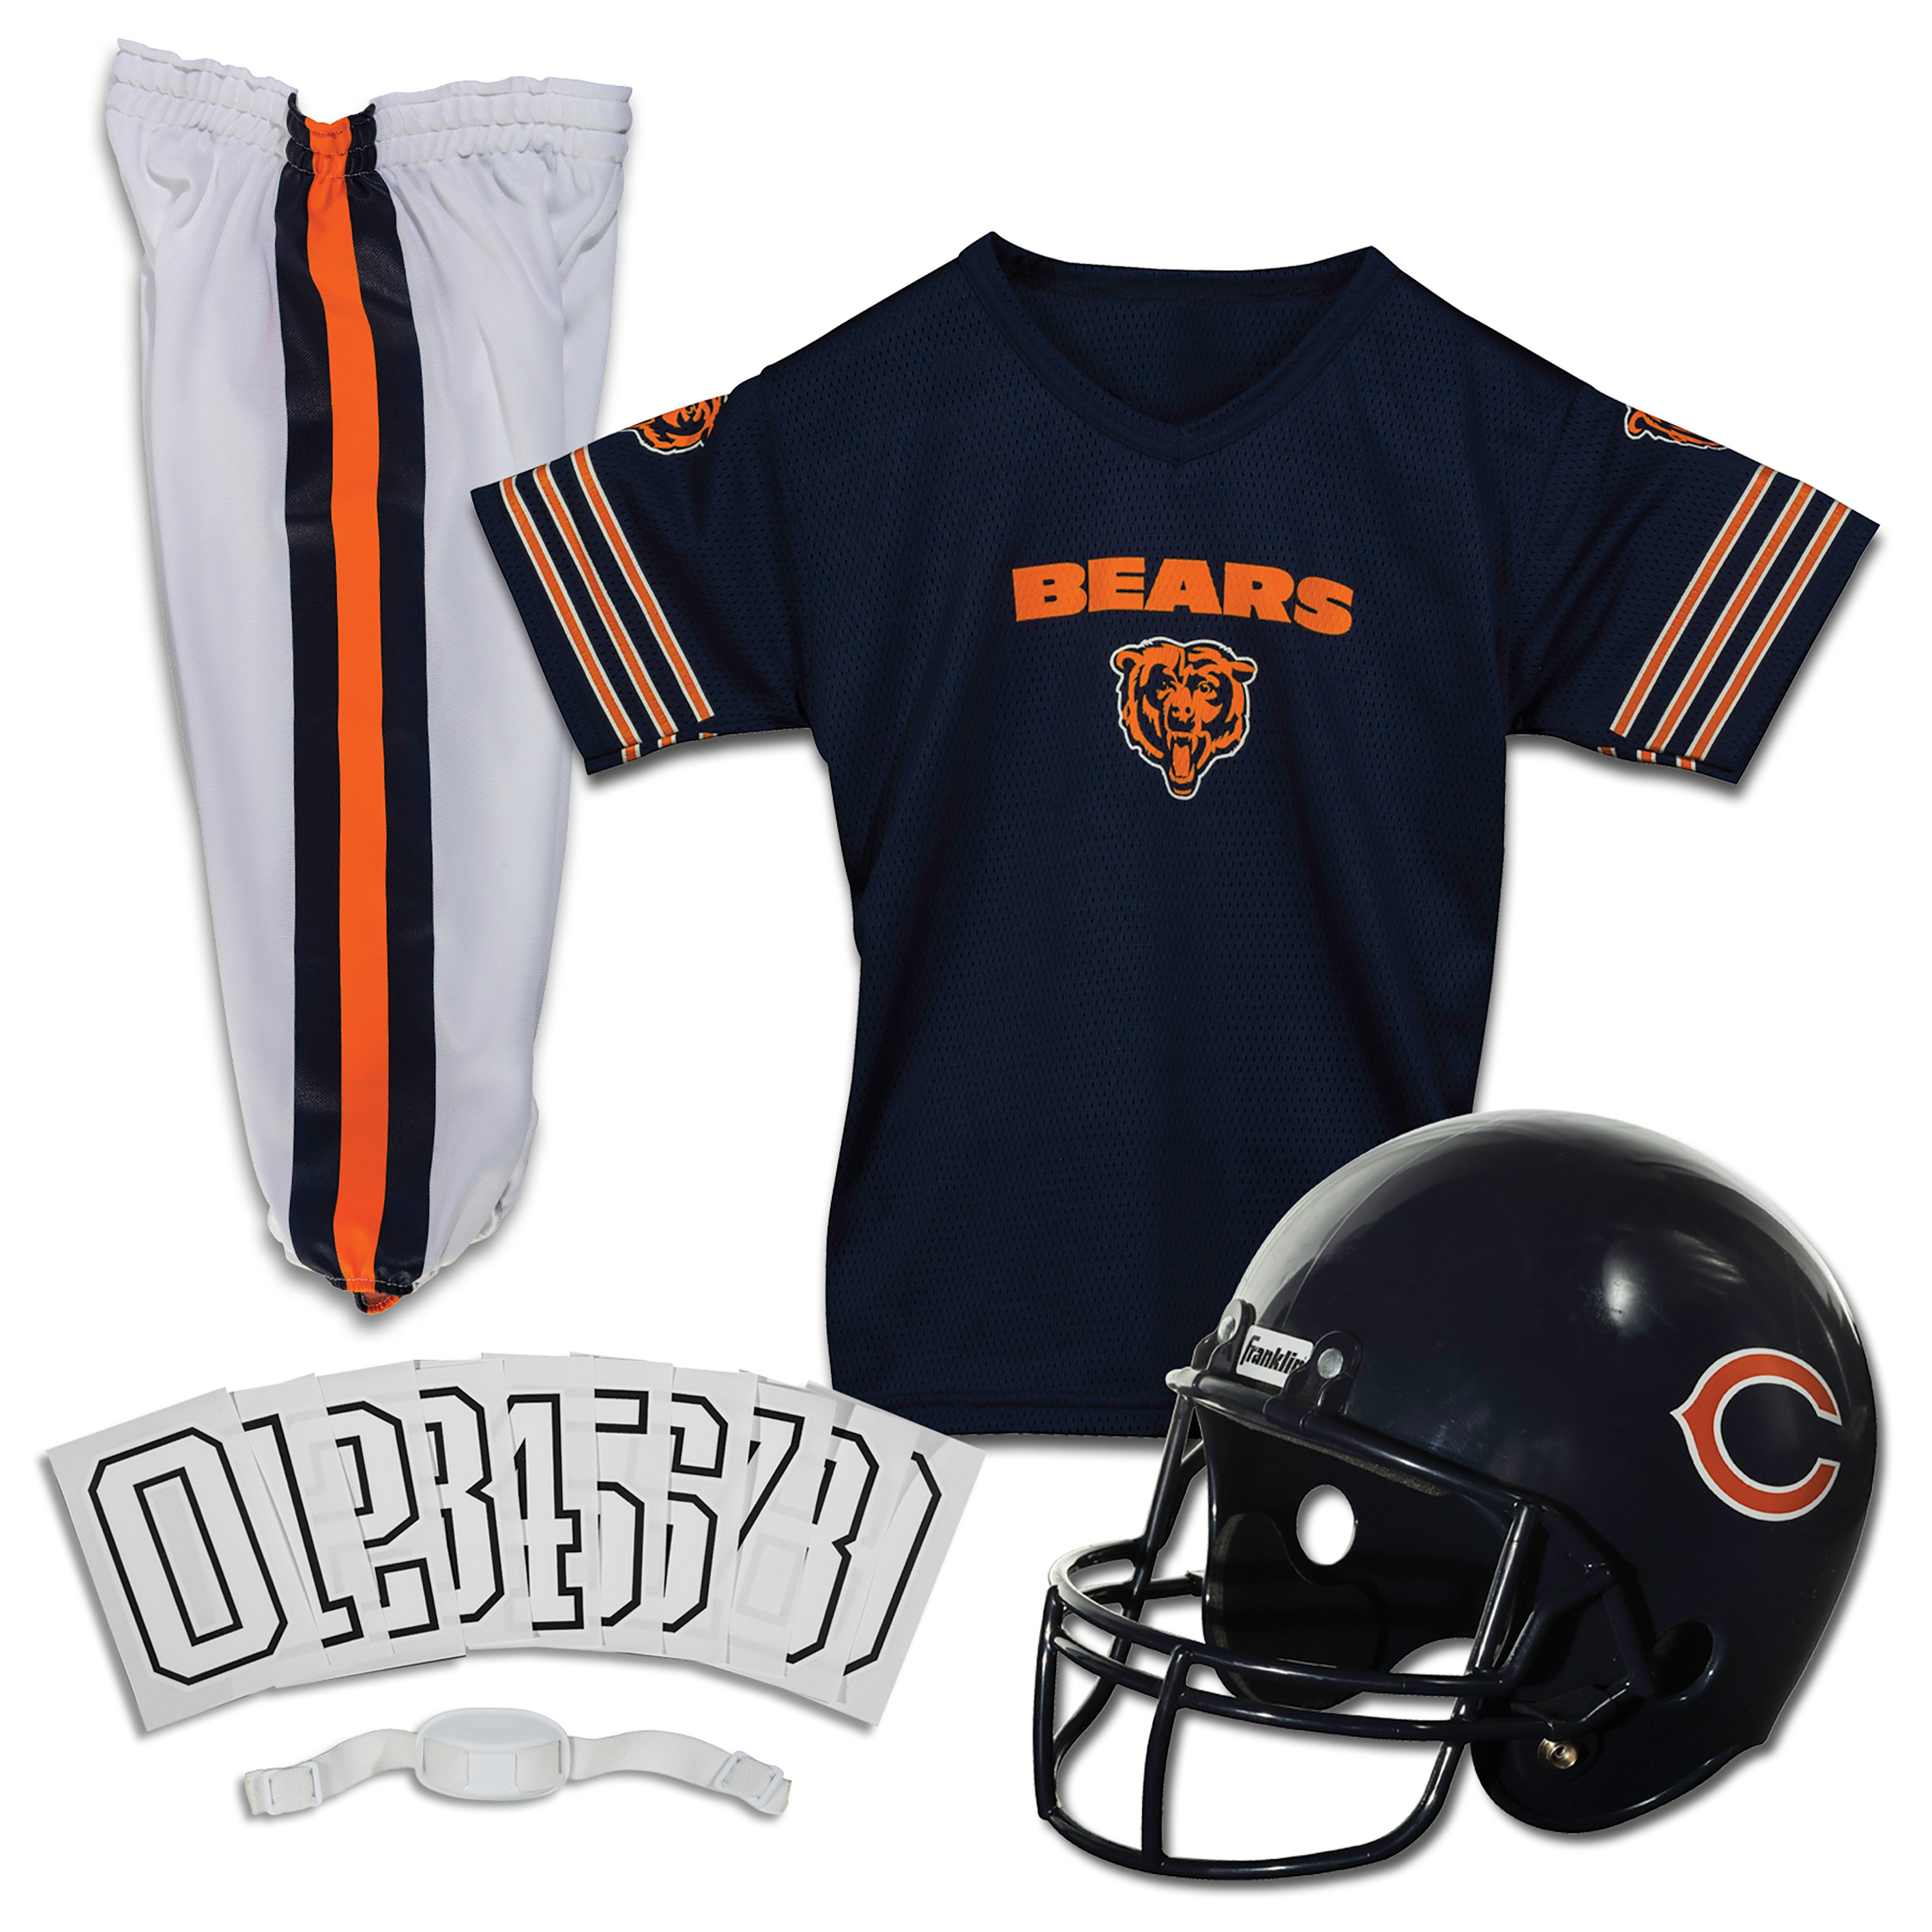 Details about Chicago Bears Uniform Set Youth NFL Football Jersey Helmet Kids Costume Small